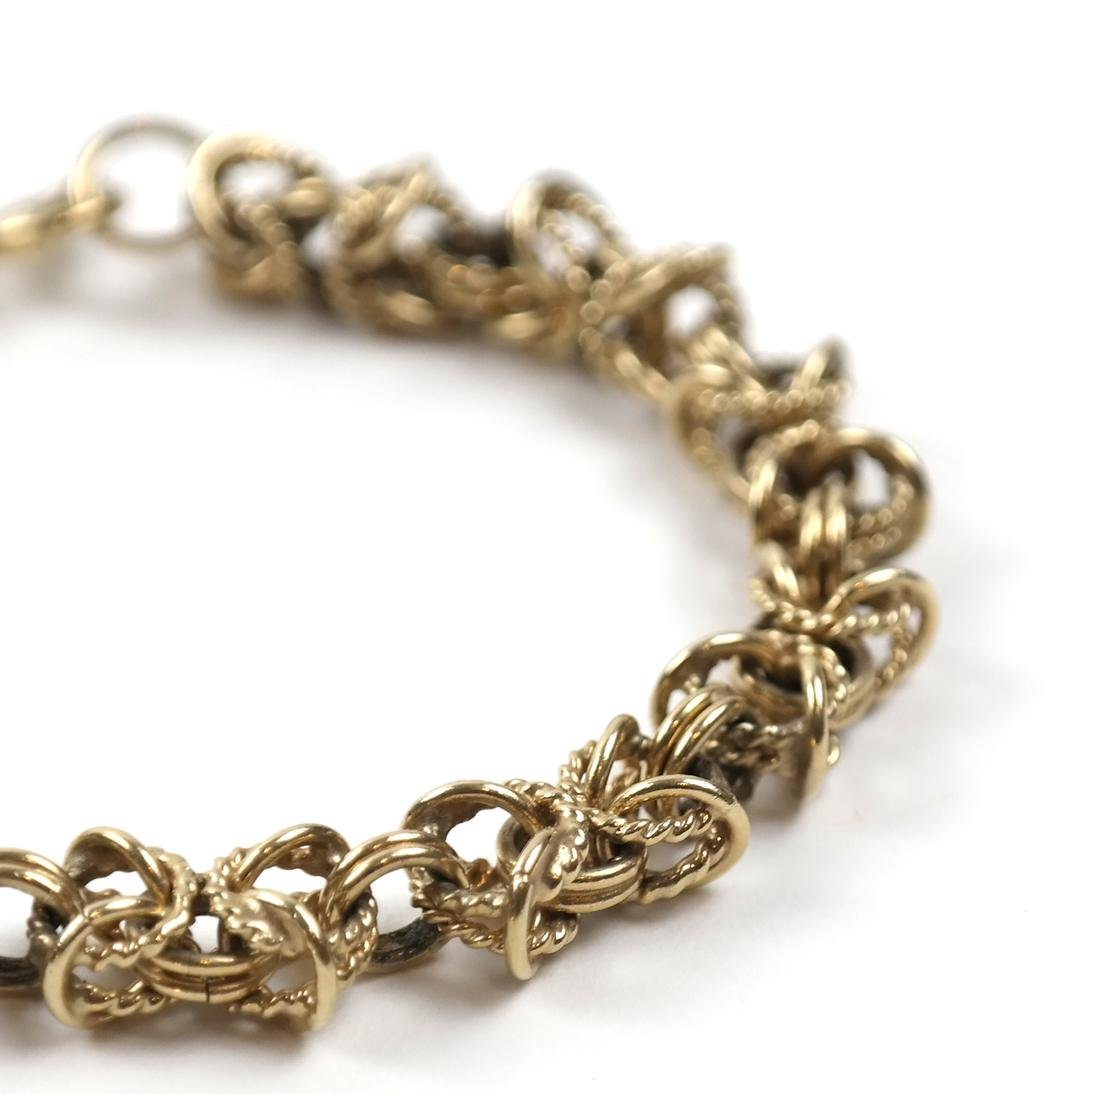 14k Yellow Gold Open Rope Link Bracelet - 2